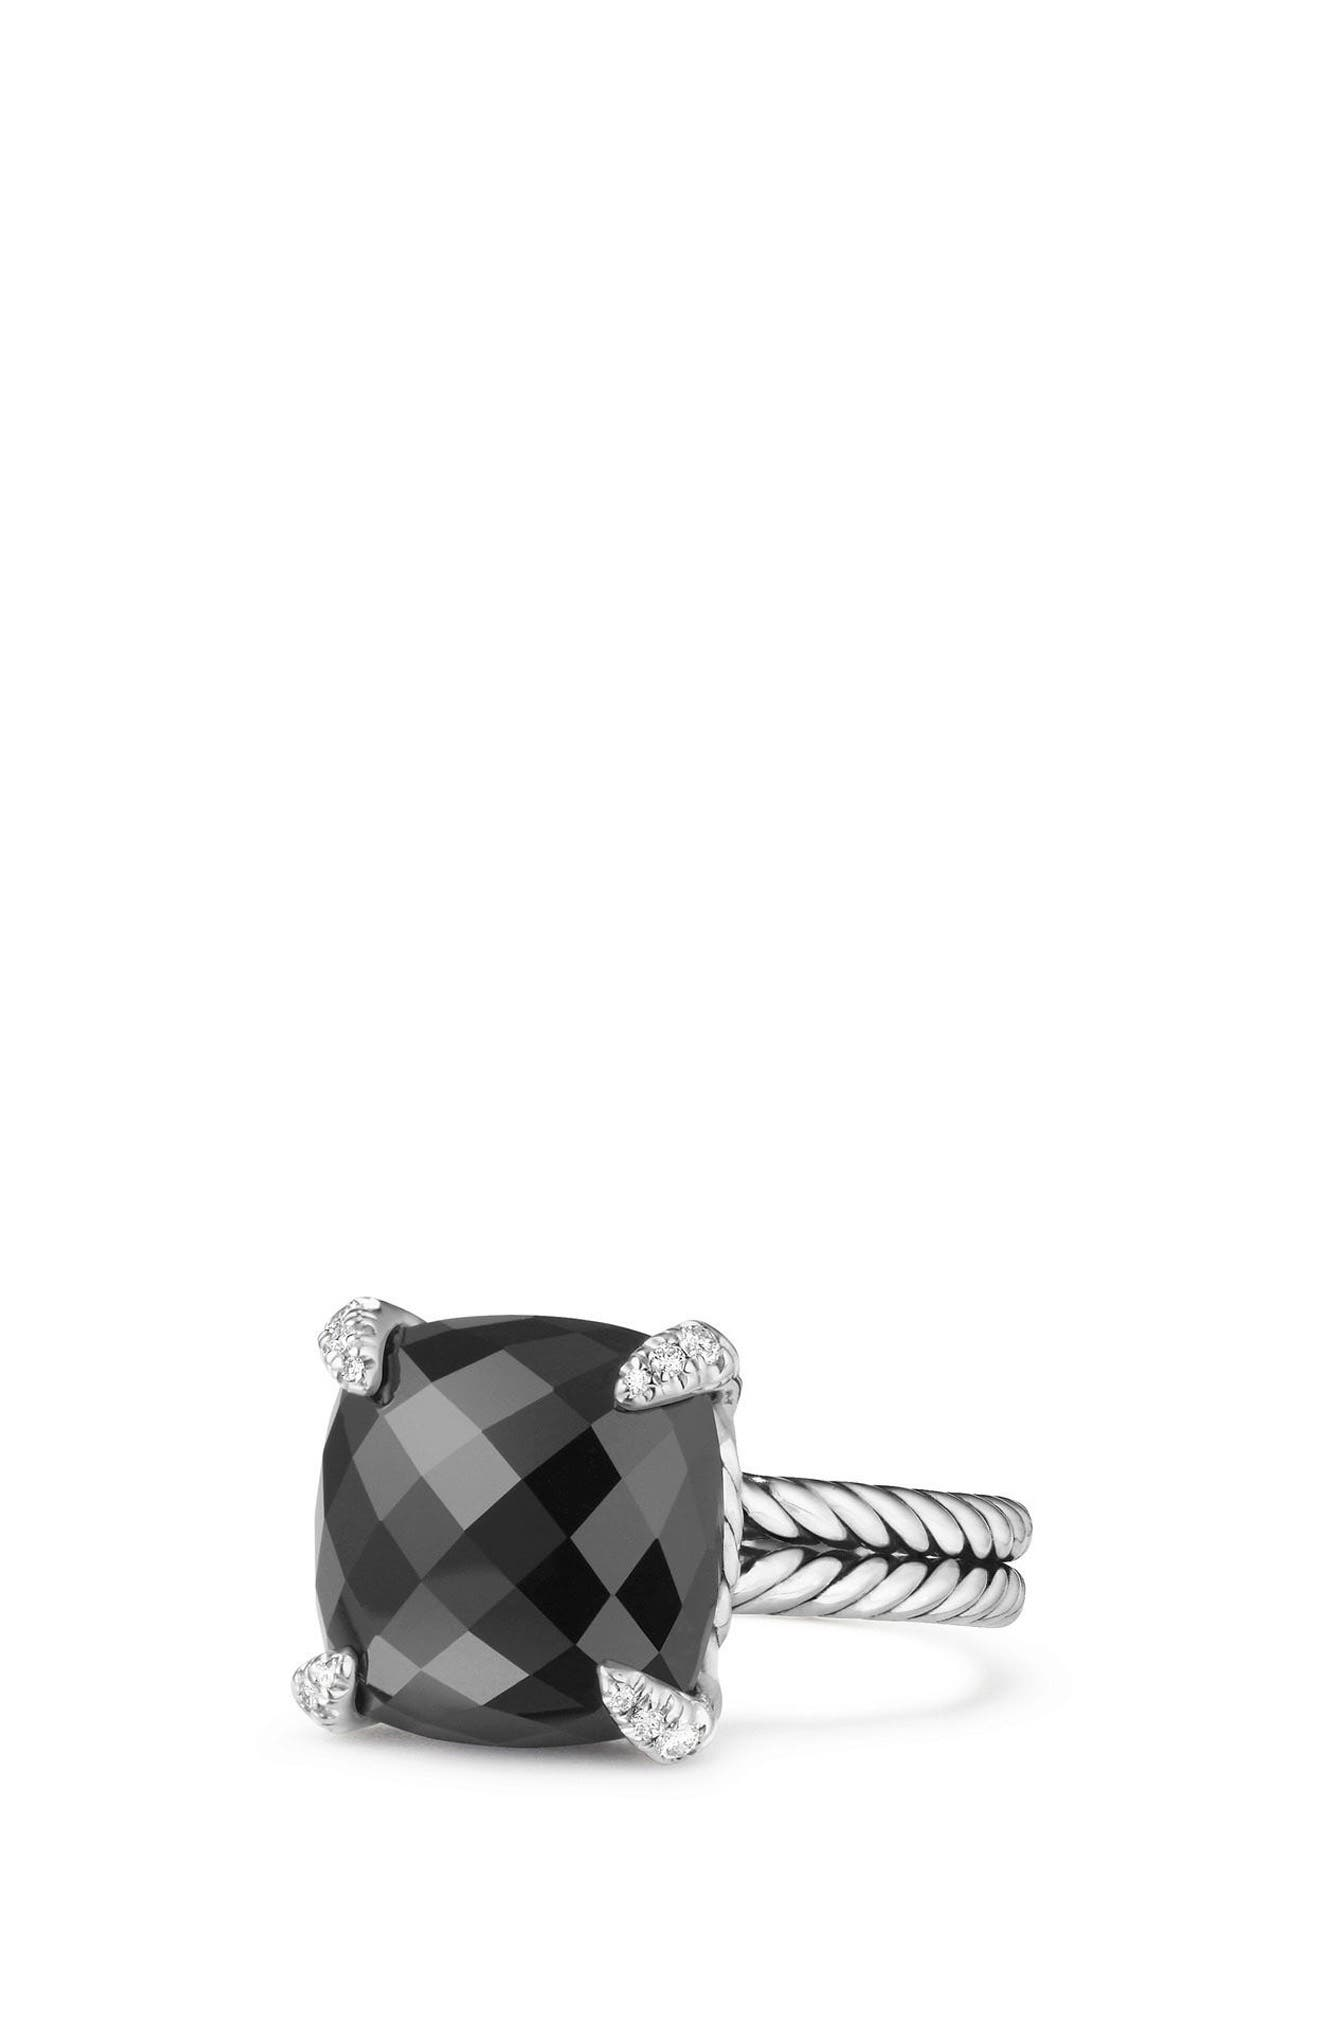 Châtelaine Ring with Semiprecious Stone & Diamonds,                         Main,                         color, BLACK ONYX